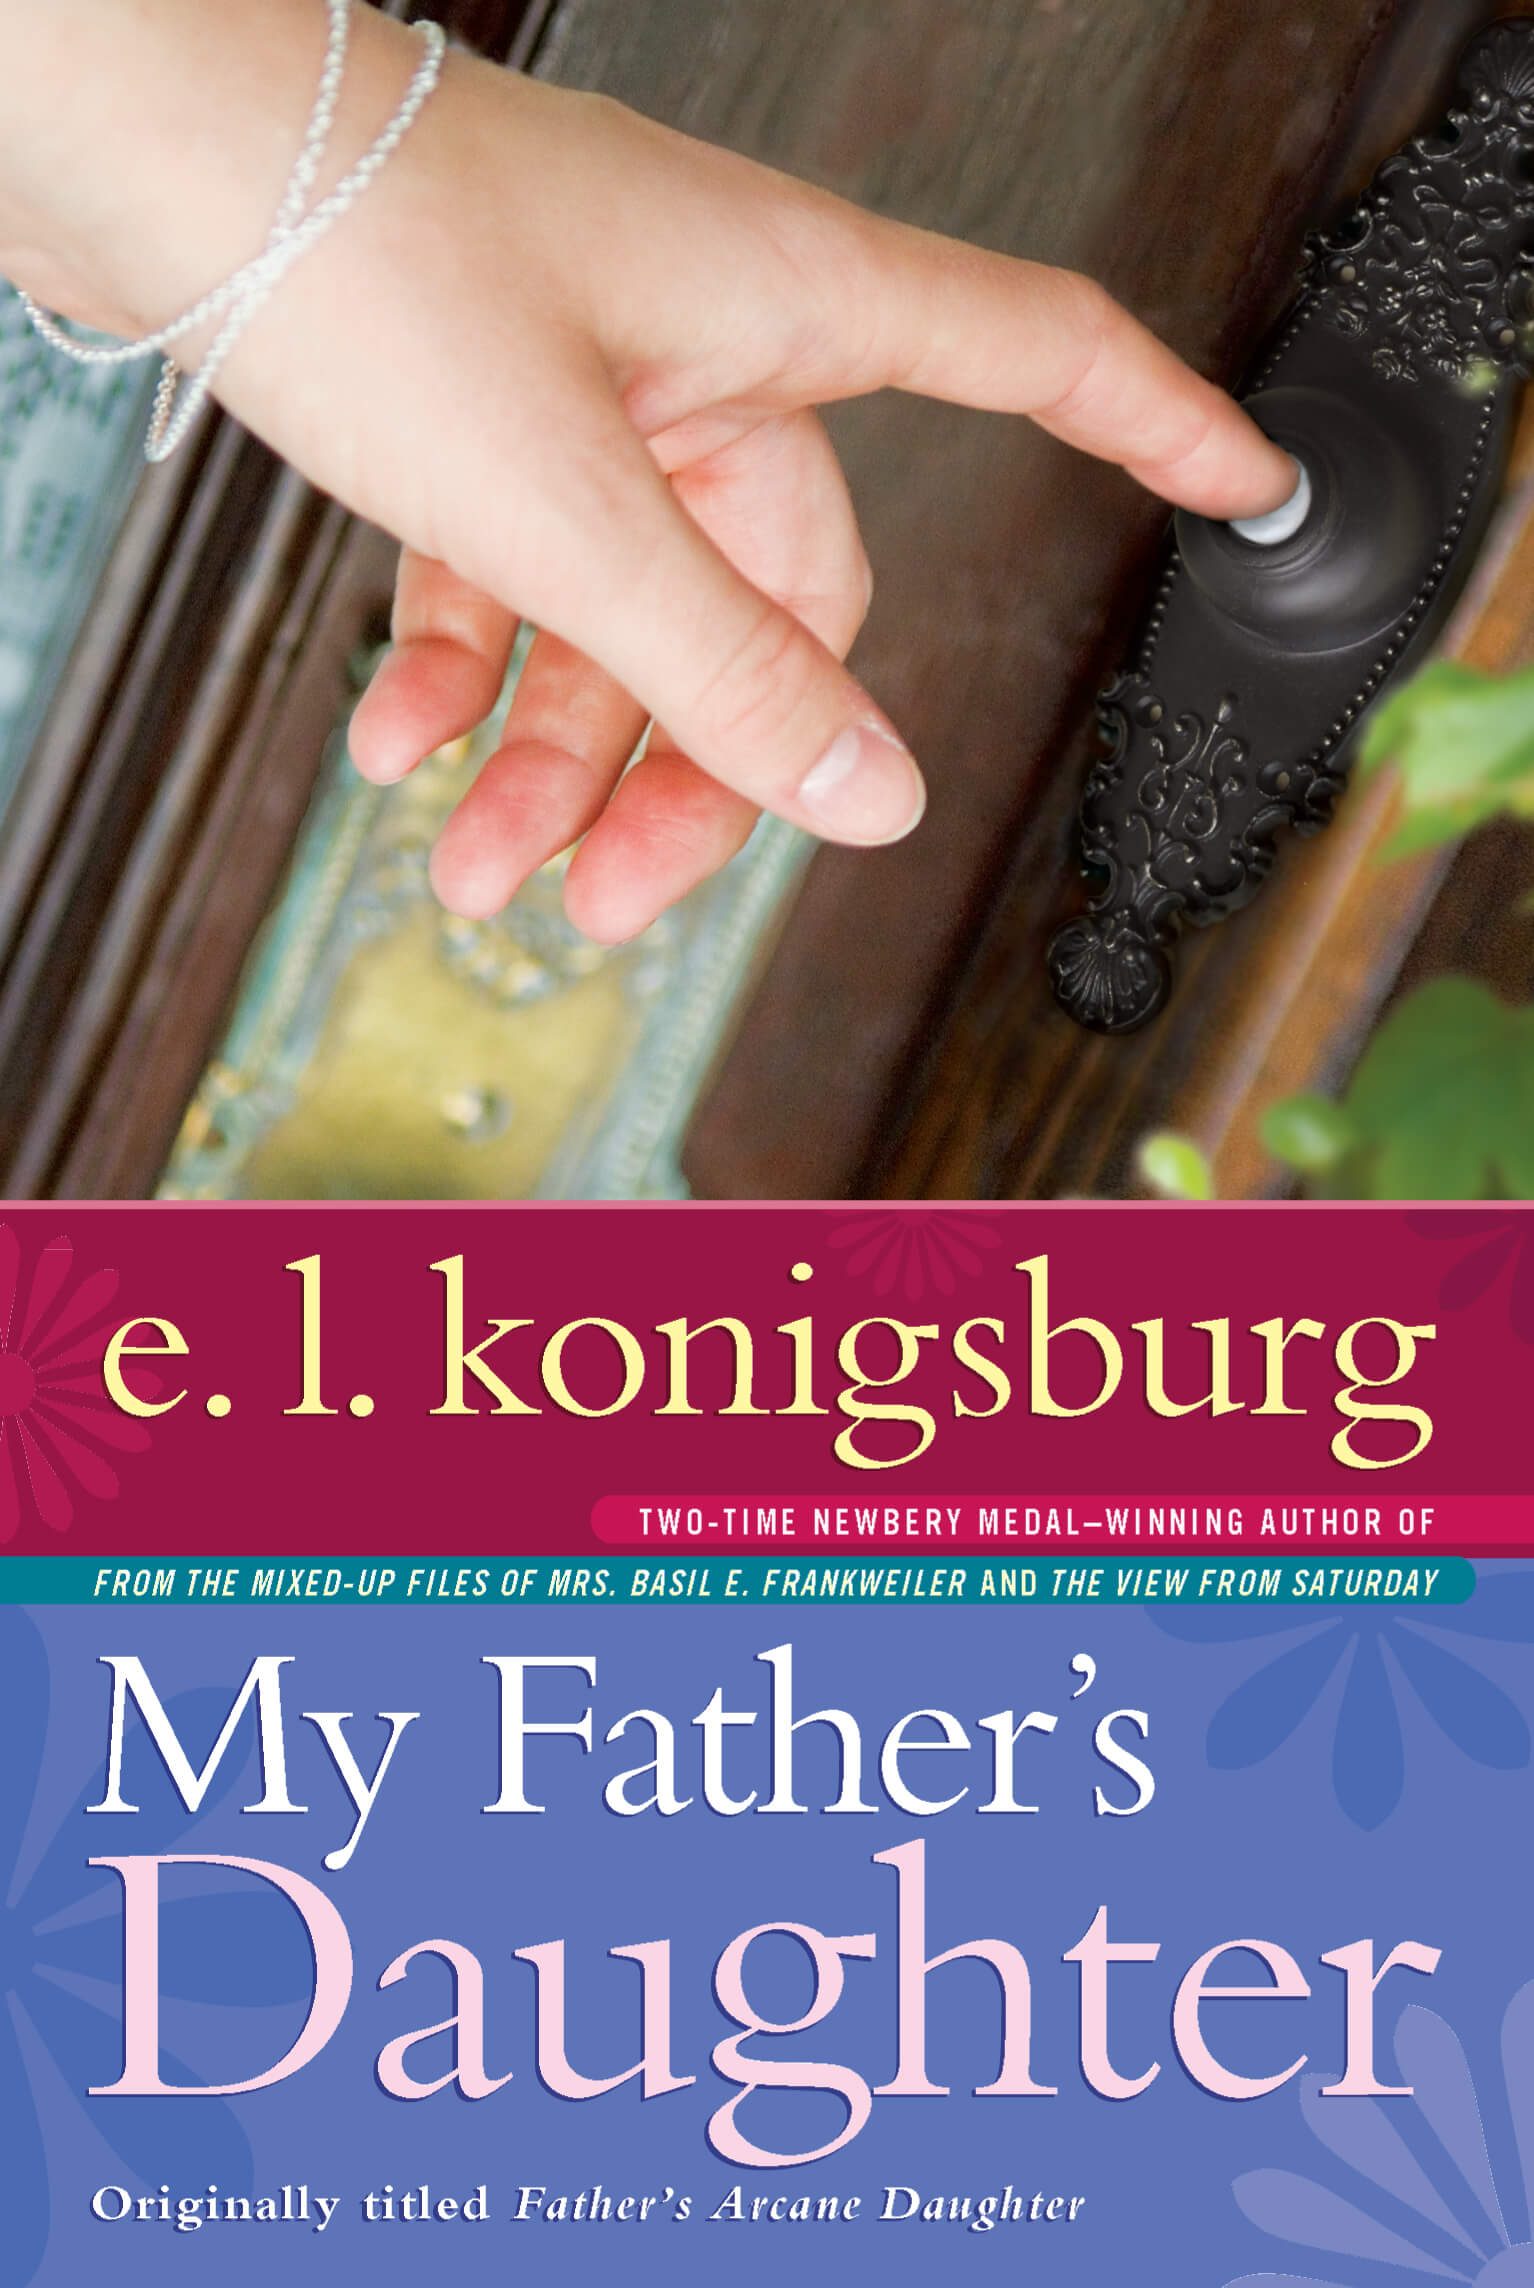 My Father's Daughter Book by E. L. Konigsburg